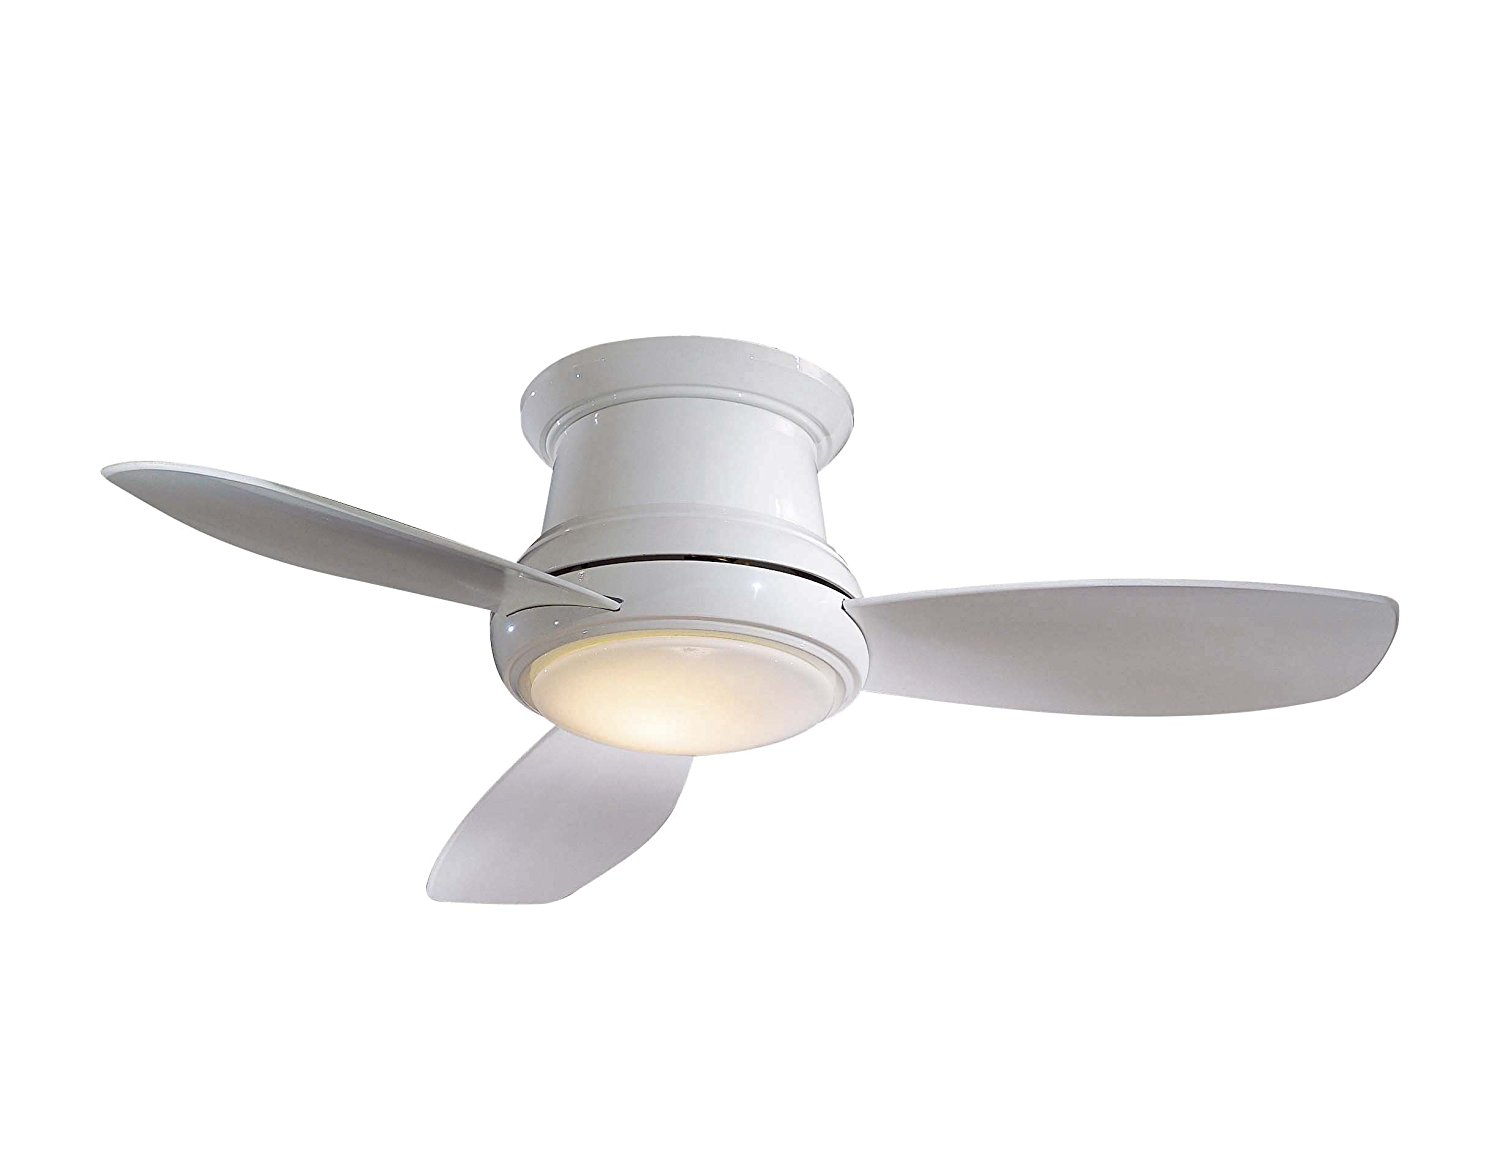 Ceiling Fan Mount : Surface mount ceiling fan top ideal for small spaces